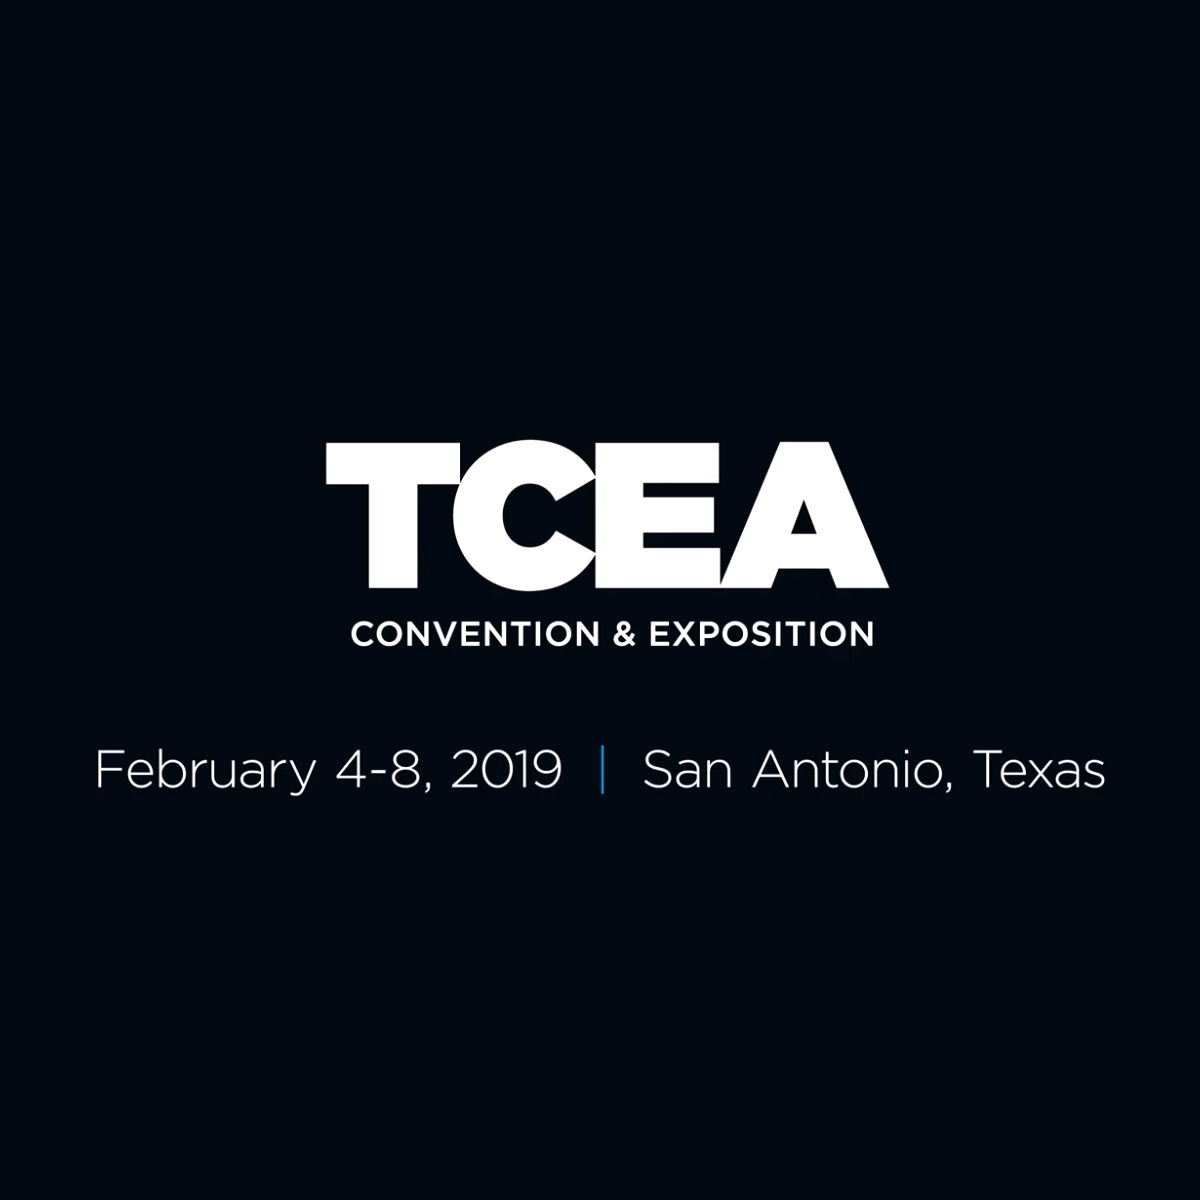 2019 TCEA Convention and Exposition — Get More Math!